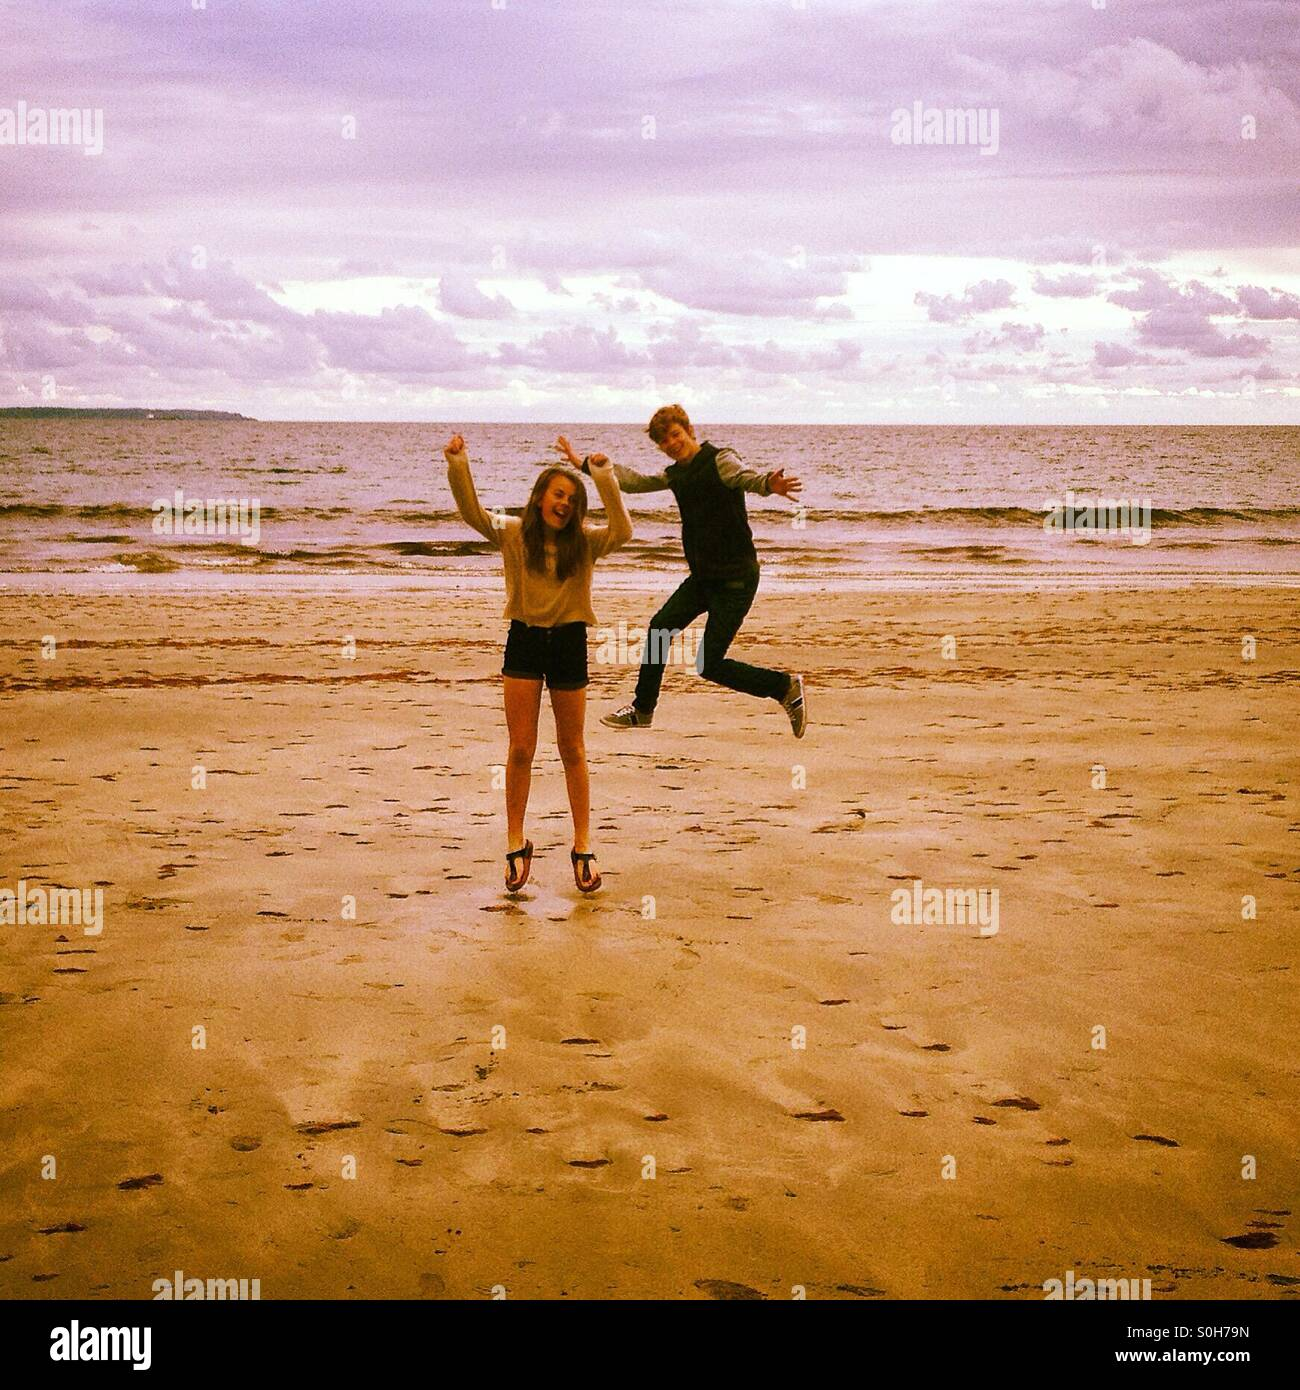 Boy and girl leaping on beach Photo Stock